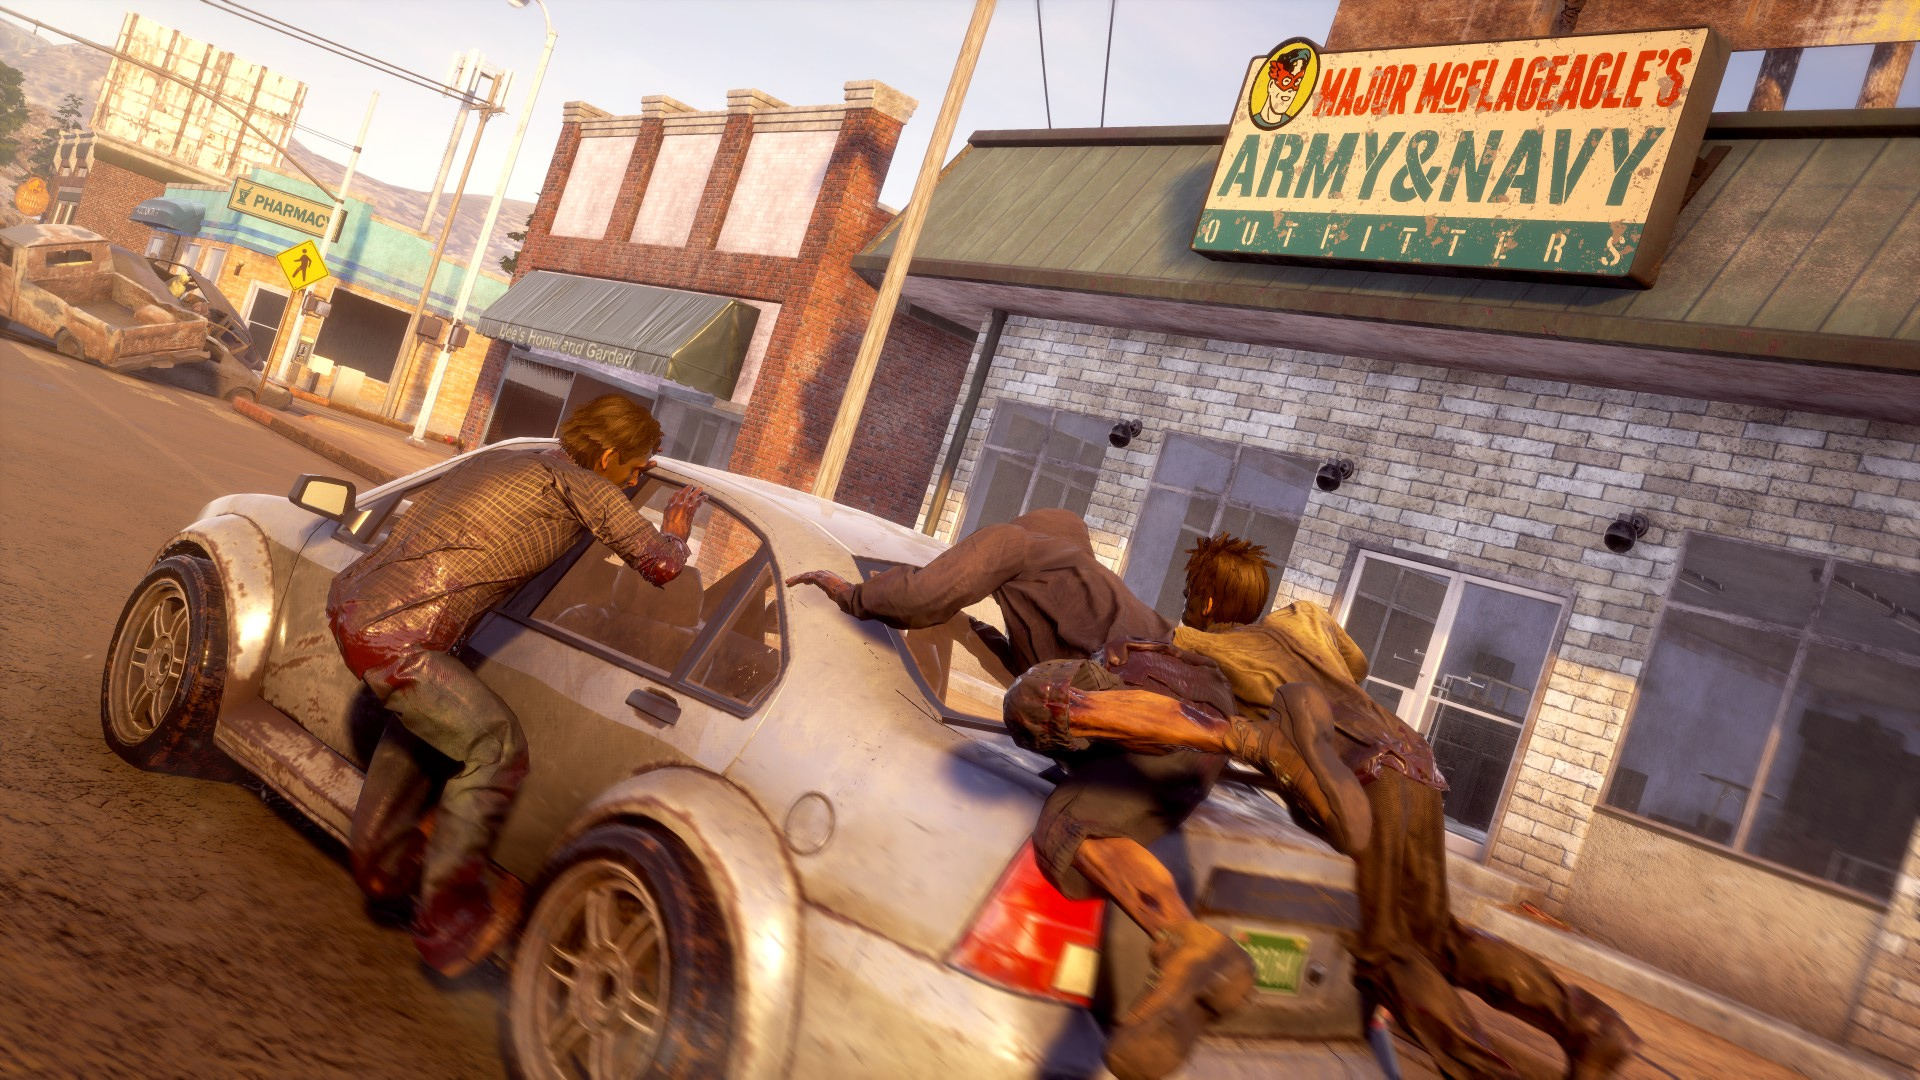 State of Decay 2 just got a big patch for stability and bug fixes screenshot